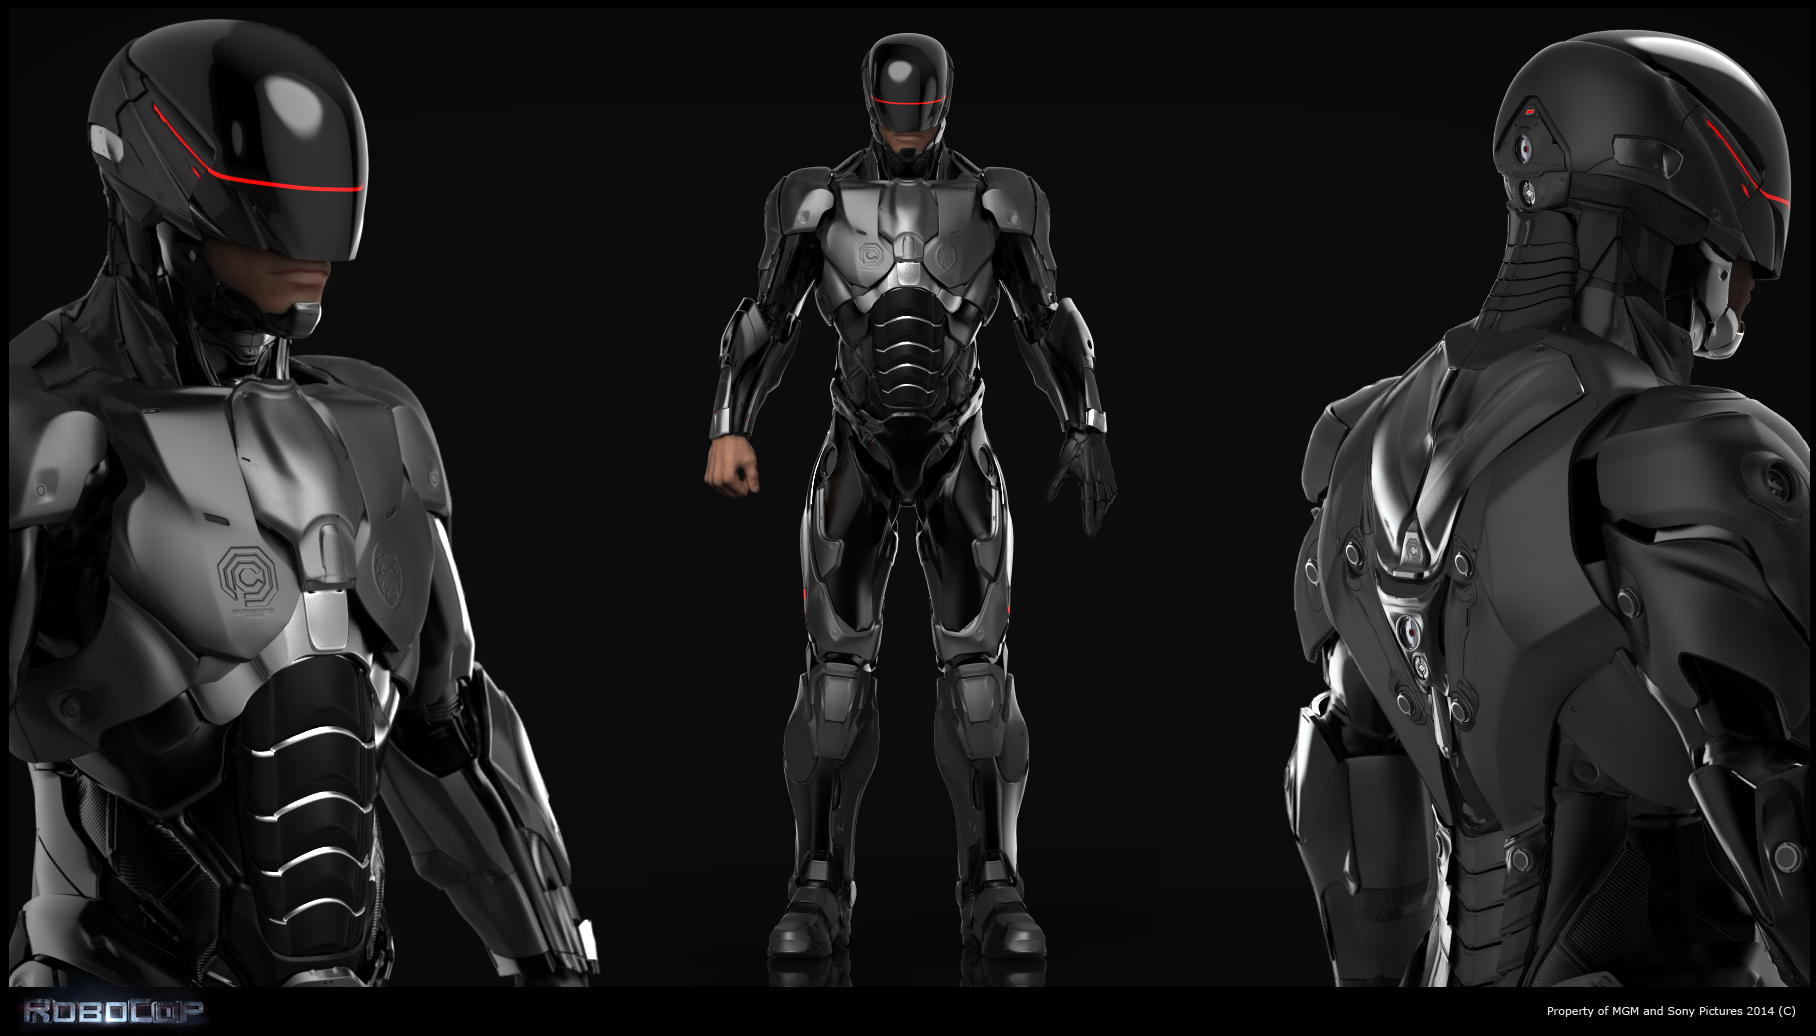 RoboCop Concept Visuals Developed Using KeyShot - KeyShot